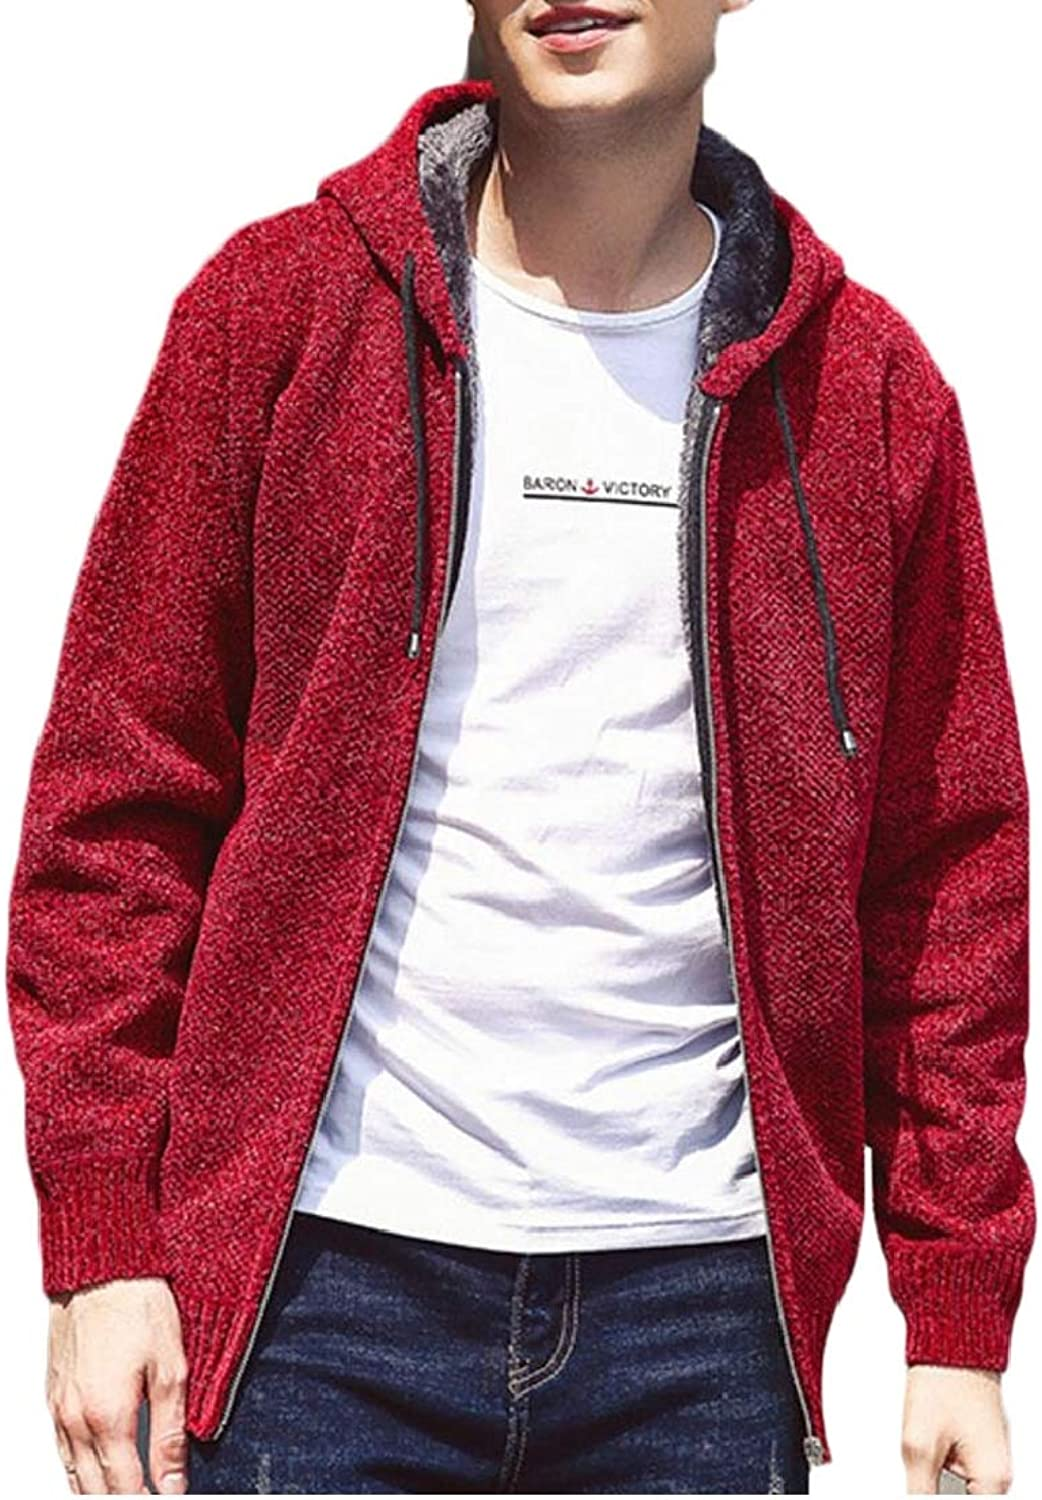 773e9892a411 TD-CACA Men Casual Casual Casual Fleece Lined Thicken Solid Knit Zip up  Hoodie Sweater Coat ea158f